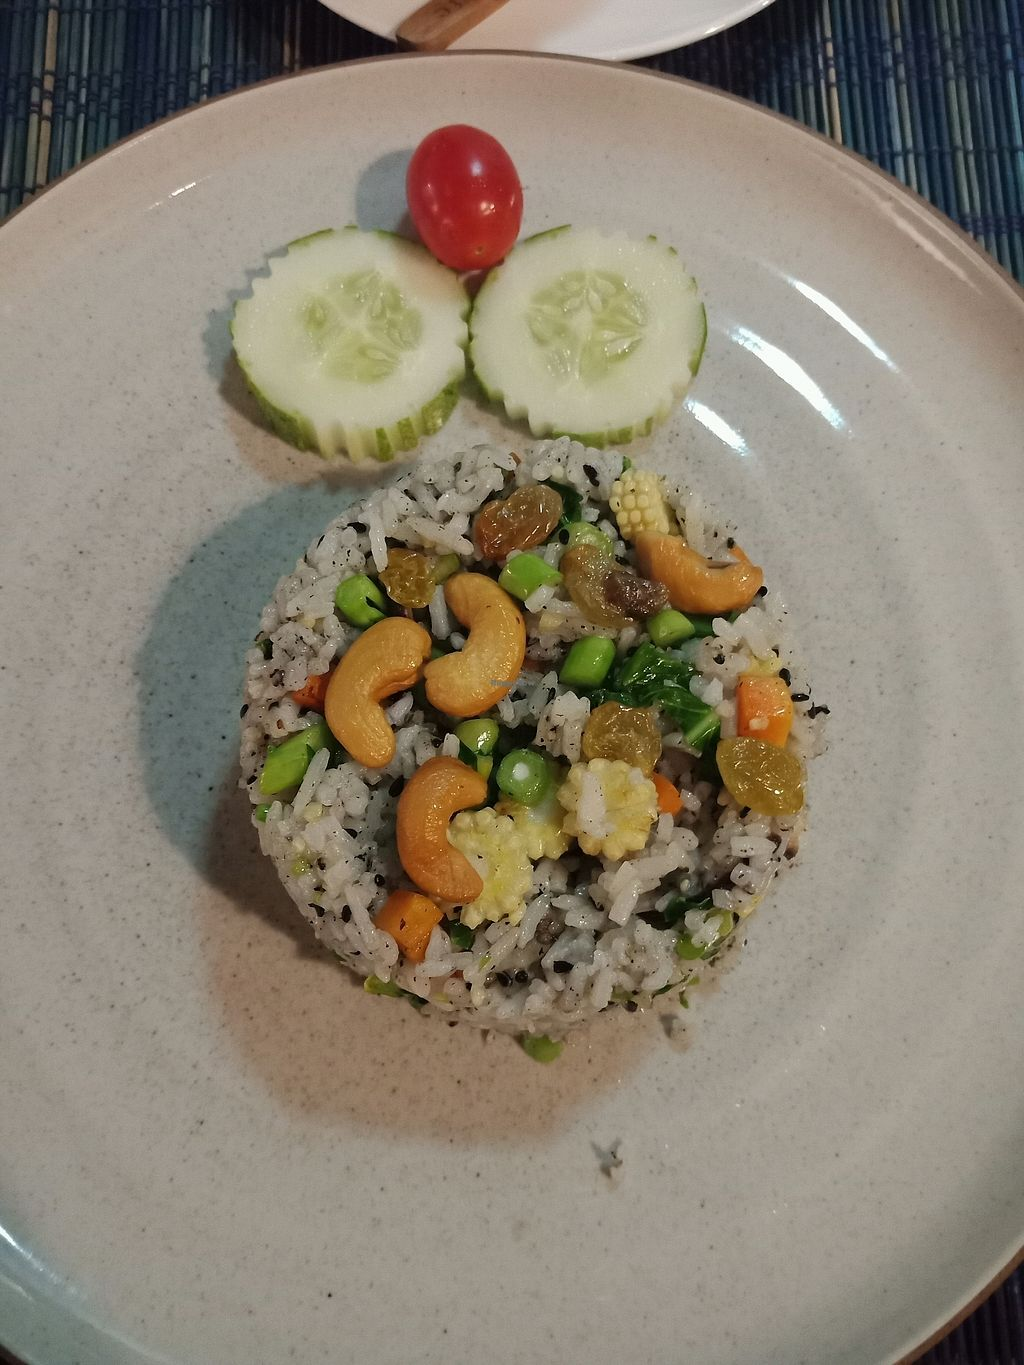 """Photo of Yogis Spicy  by <a href=""""/members/profile/GerryT"""">GerryT</a> <br/>cashew black sesam fried rice <br/> March 19, 2018  - <a href='/contact/abuse/image/85642/372876'>Report</a>"""